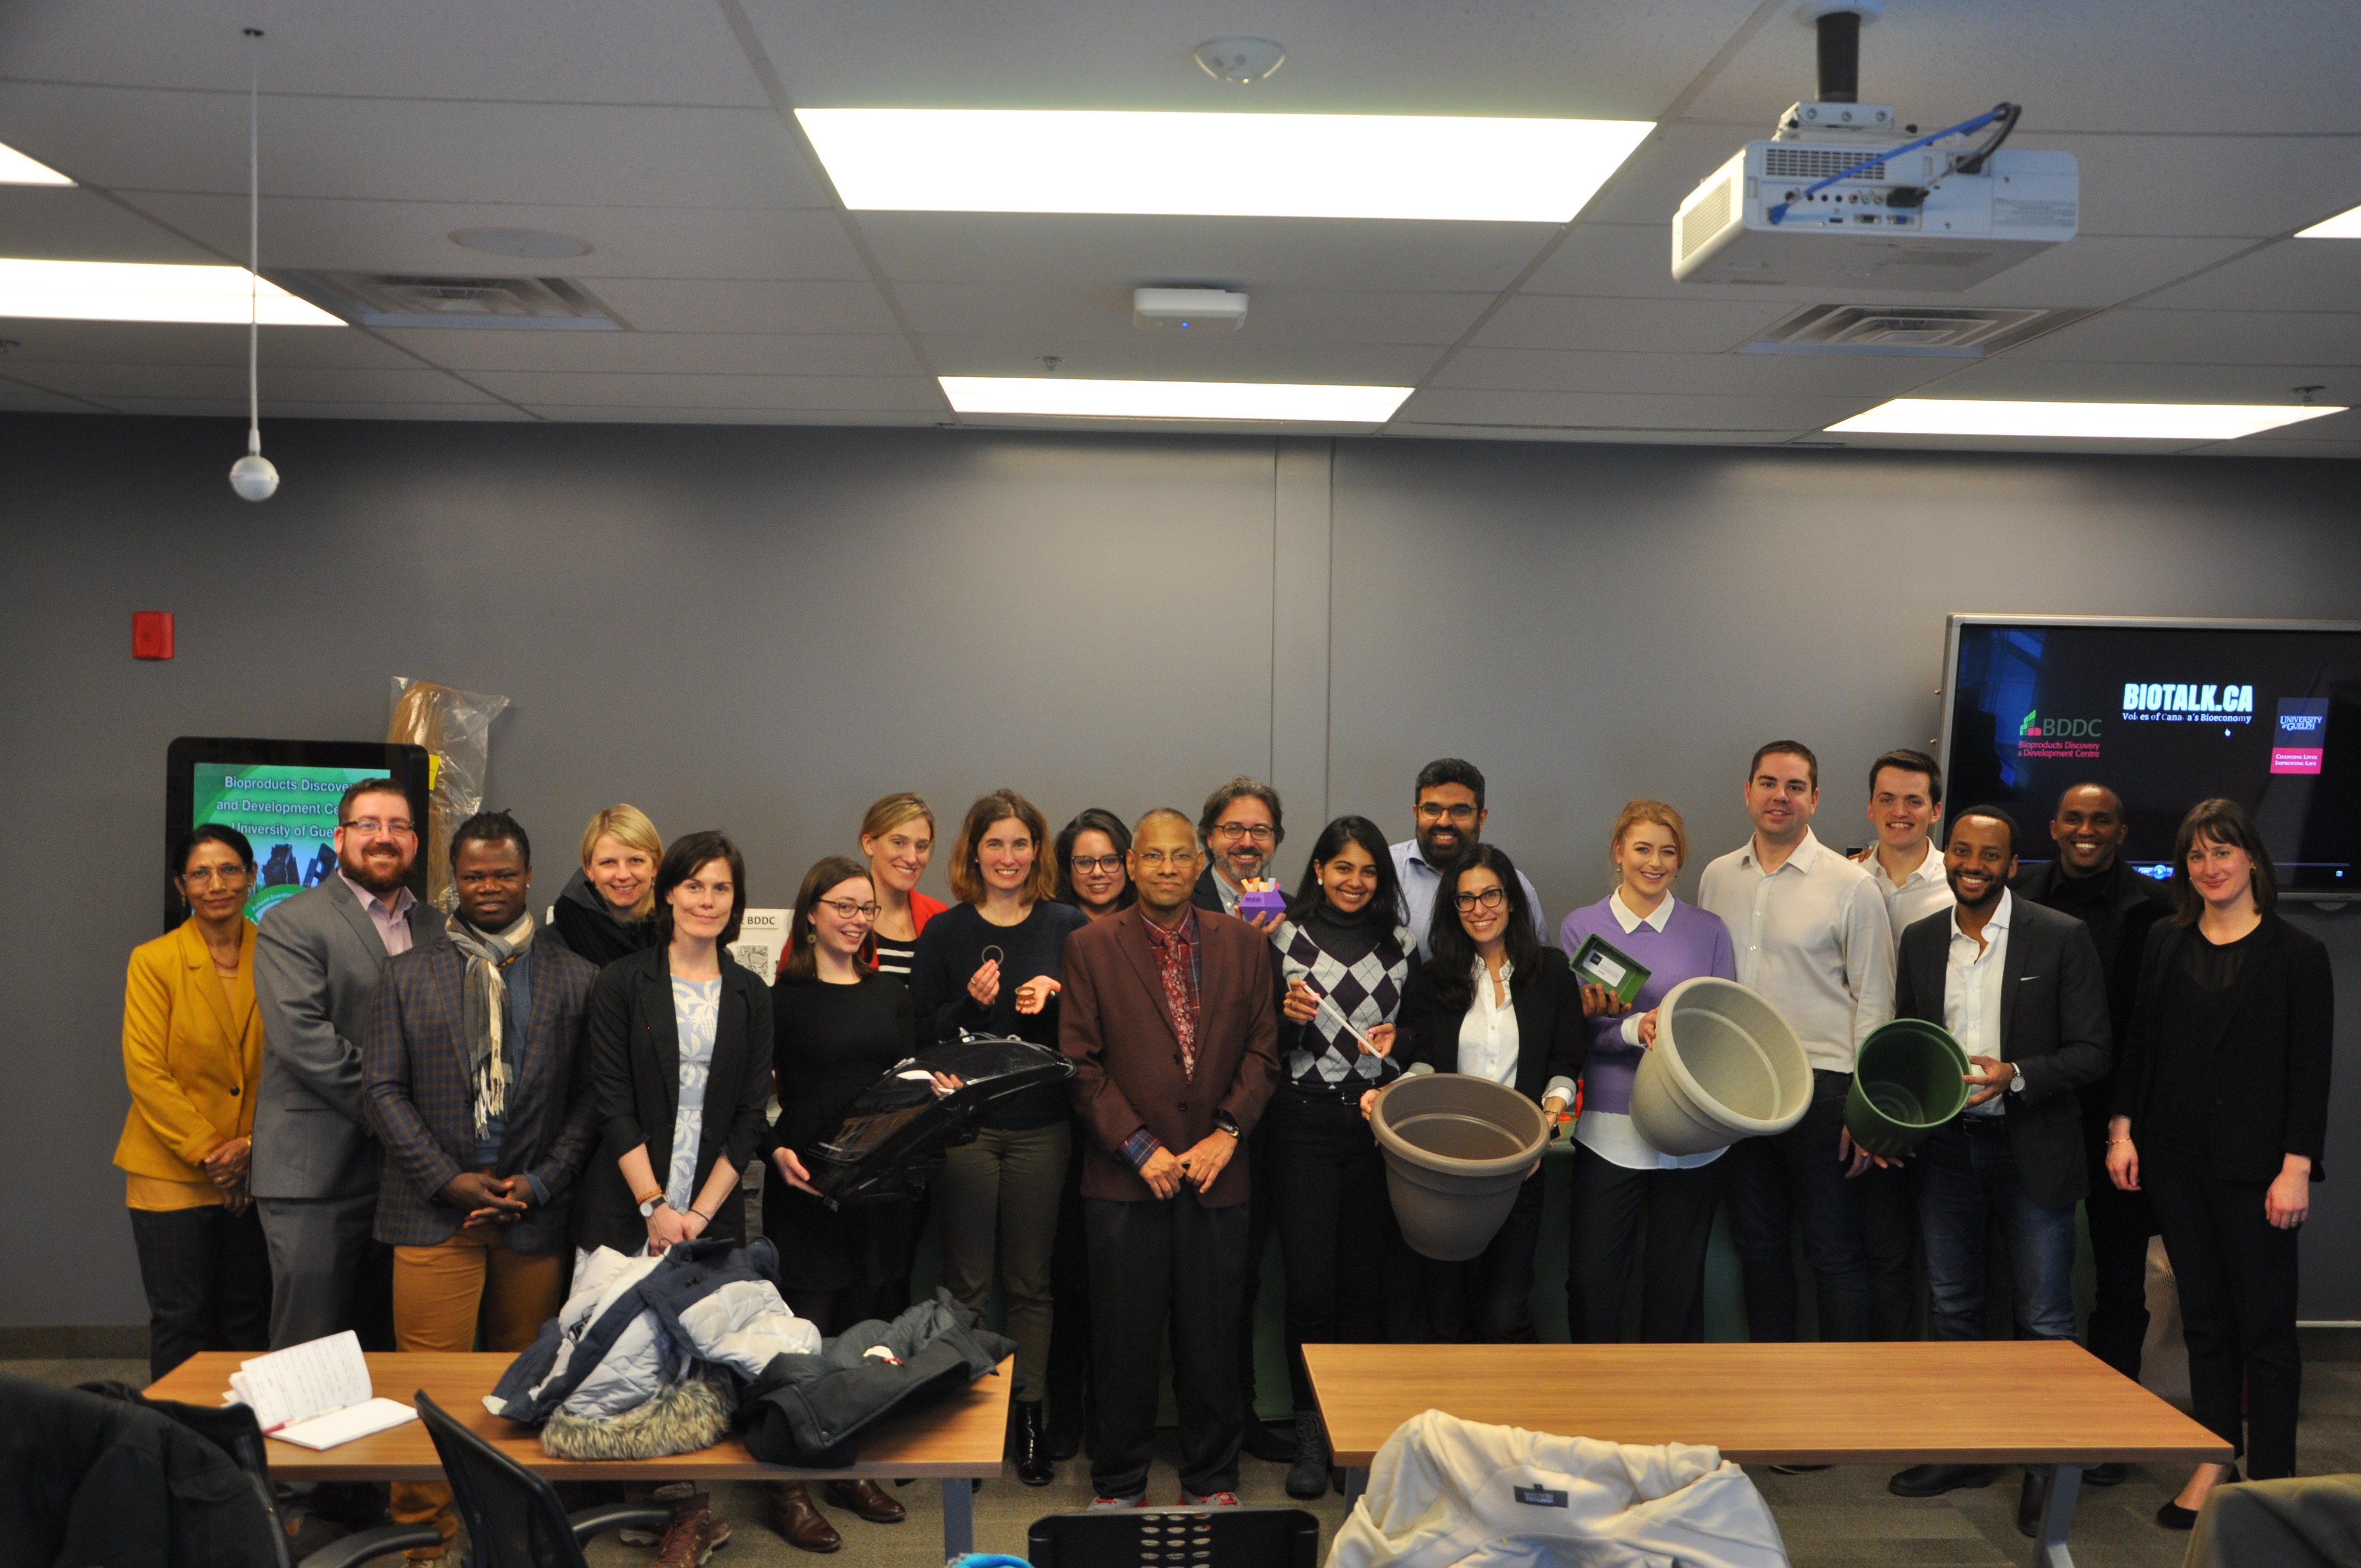 Action Canada Fellows Visit The BDDC